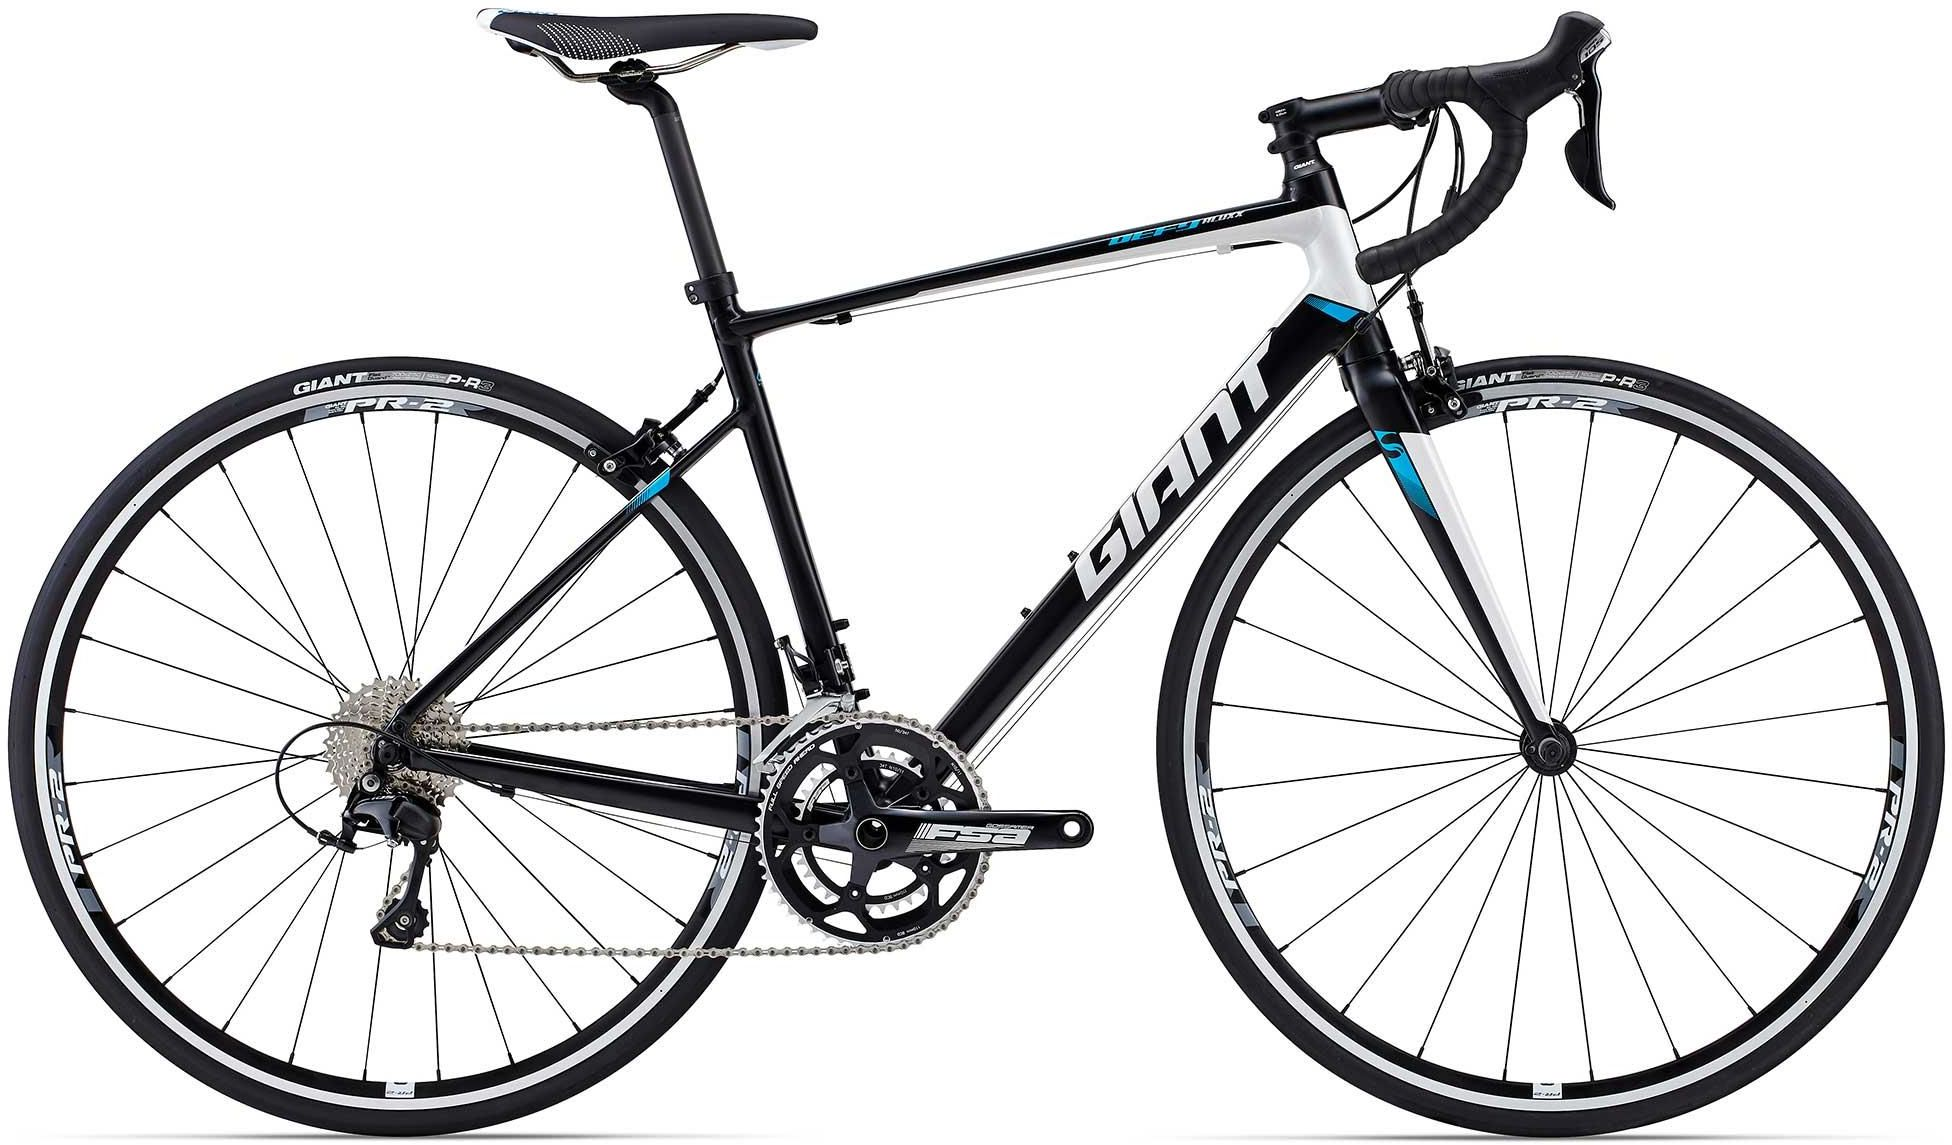 dba66c307b3 Giant Defy 1 2015 review - The Bike List